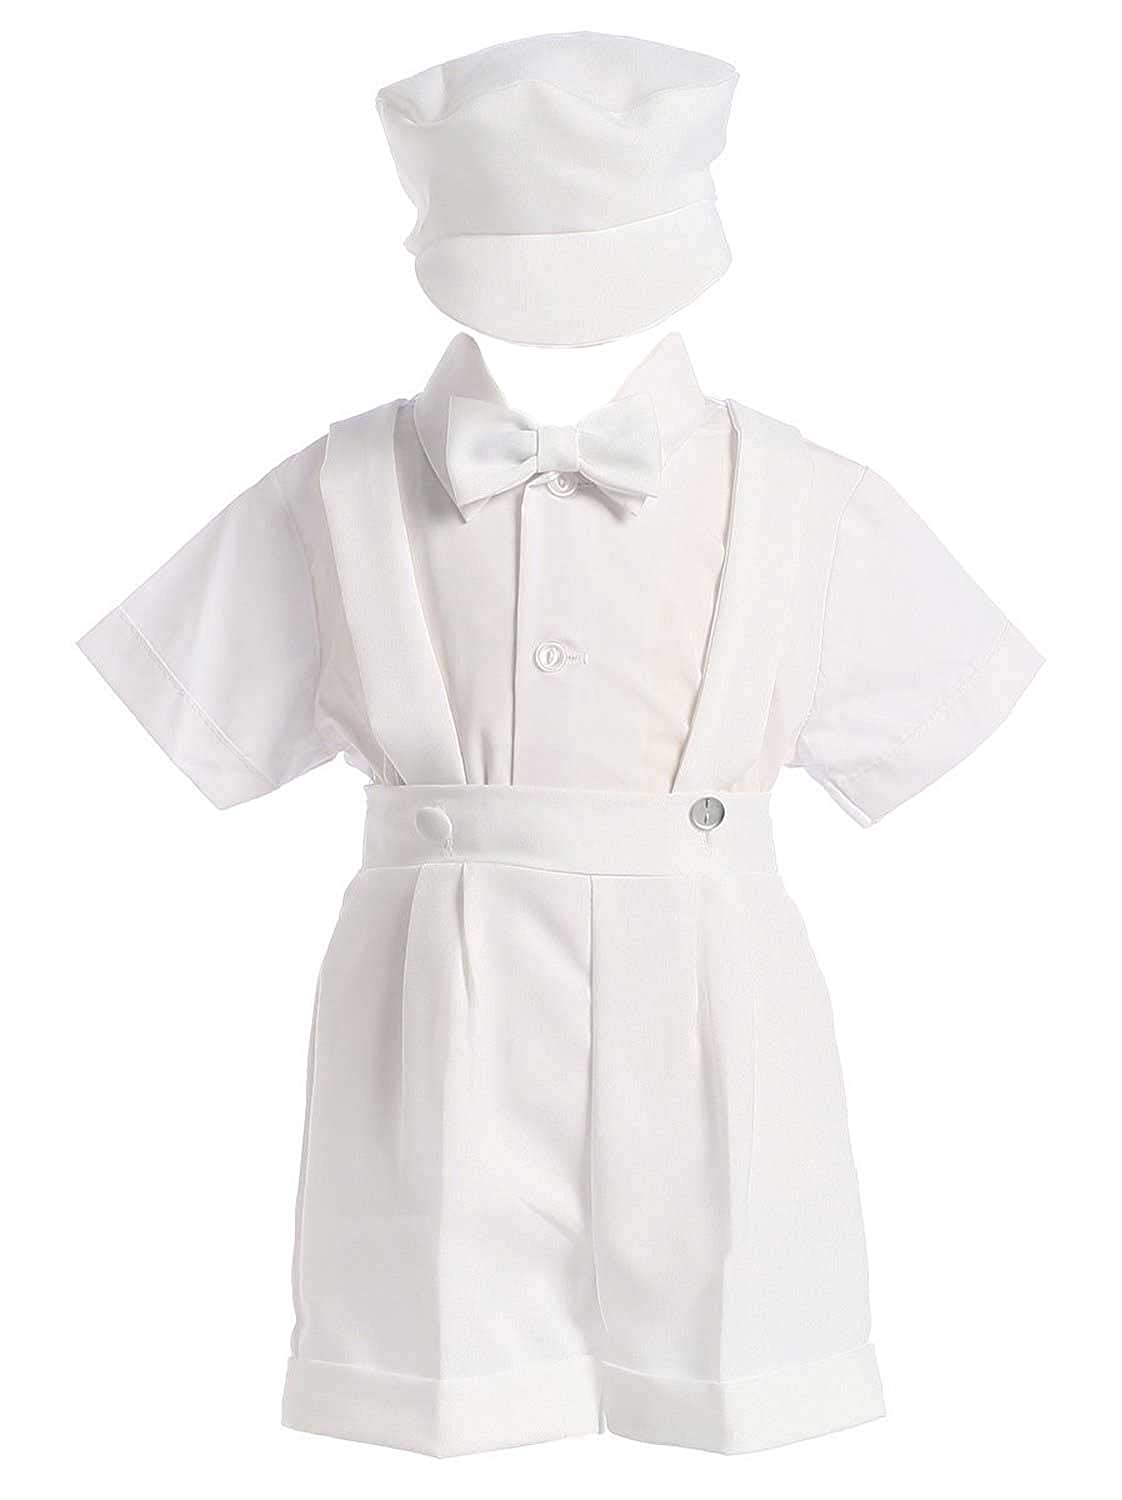 White Christening Baptism Suspenders and Short Set with Hat - size 4T